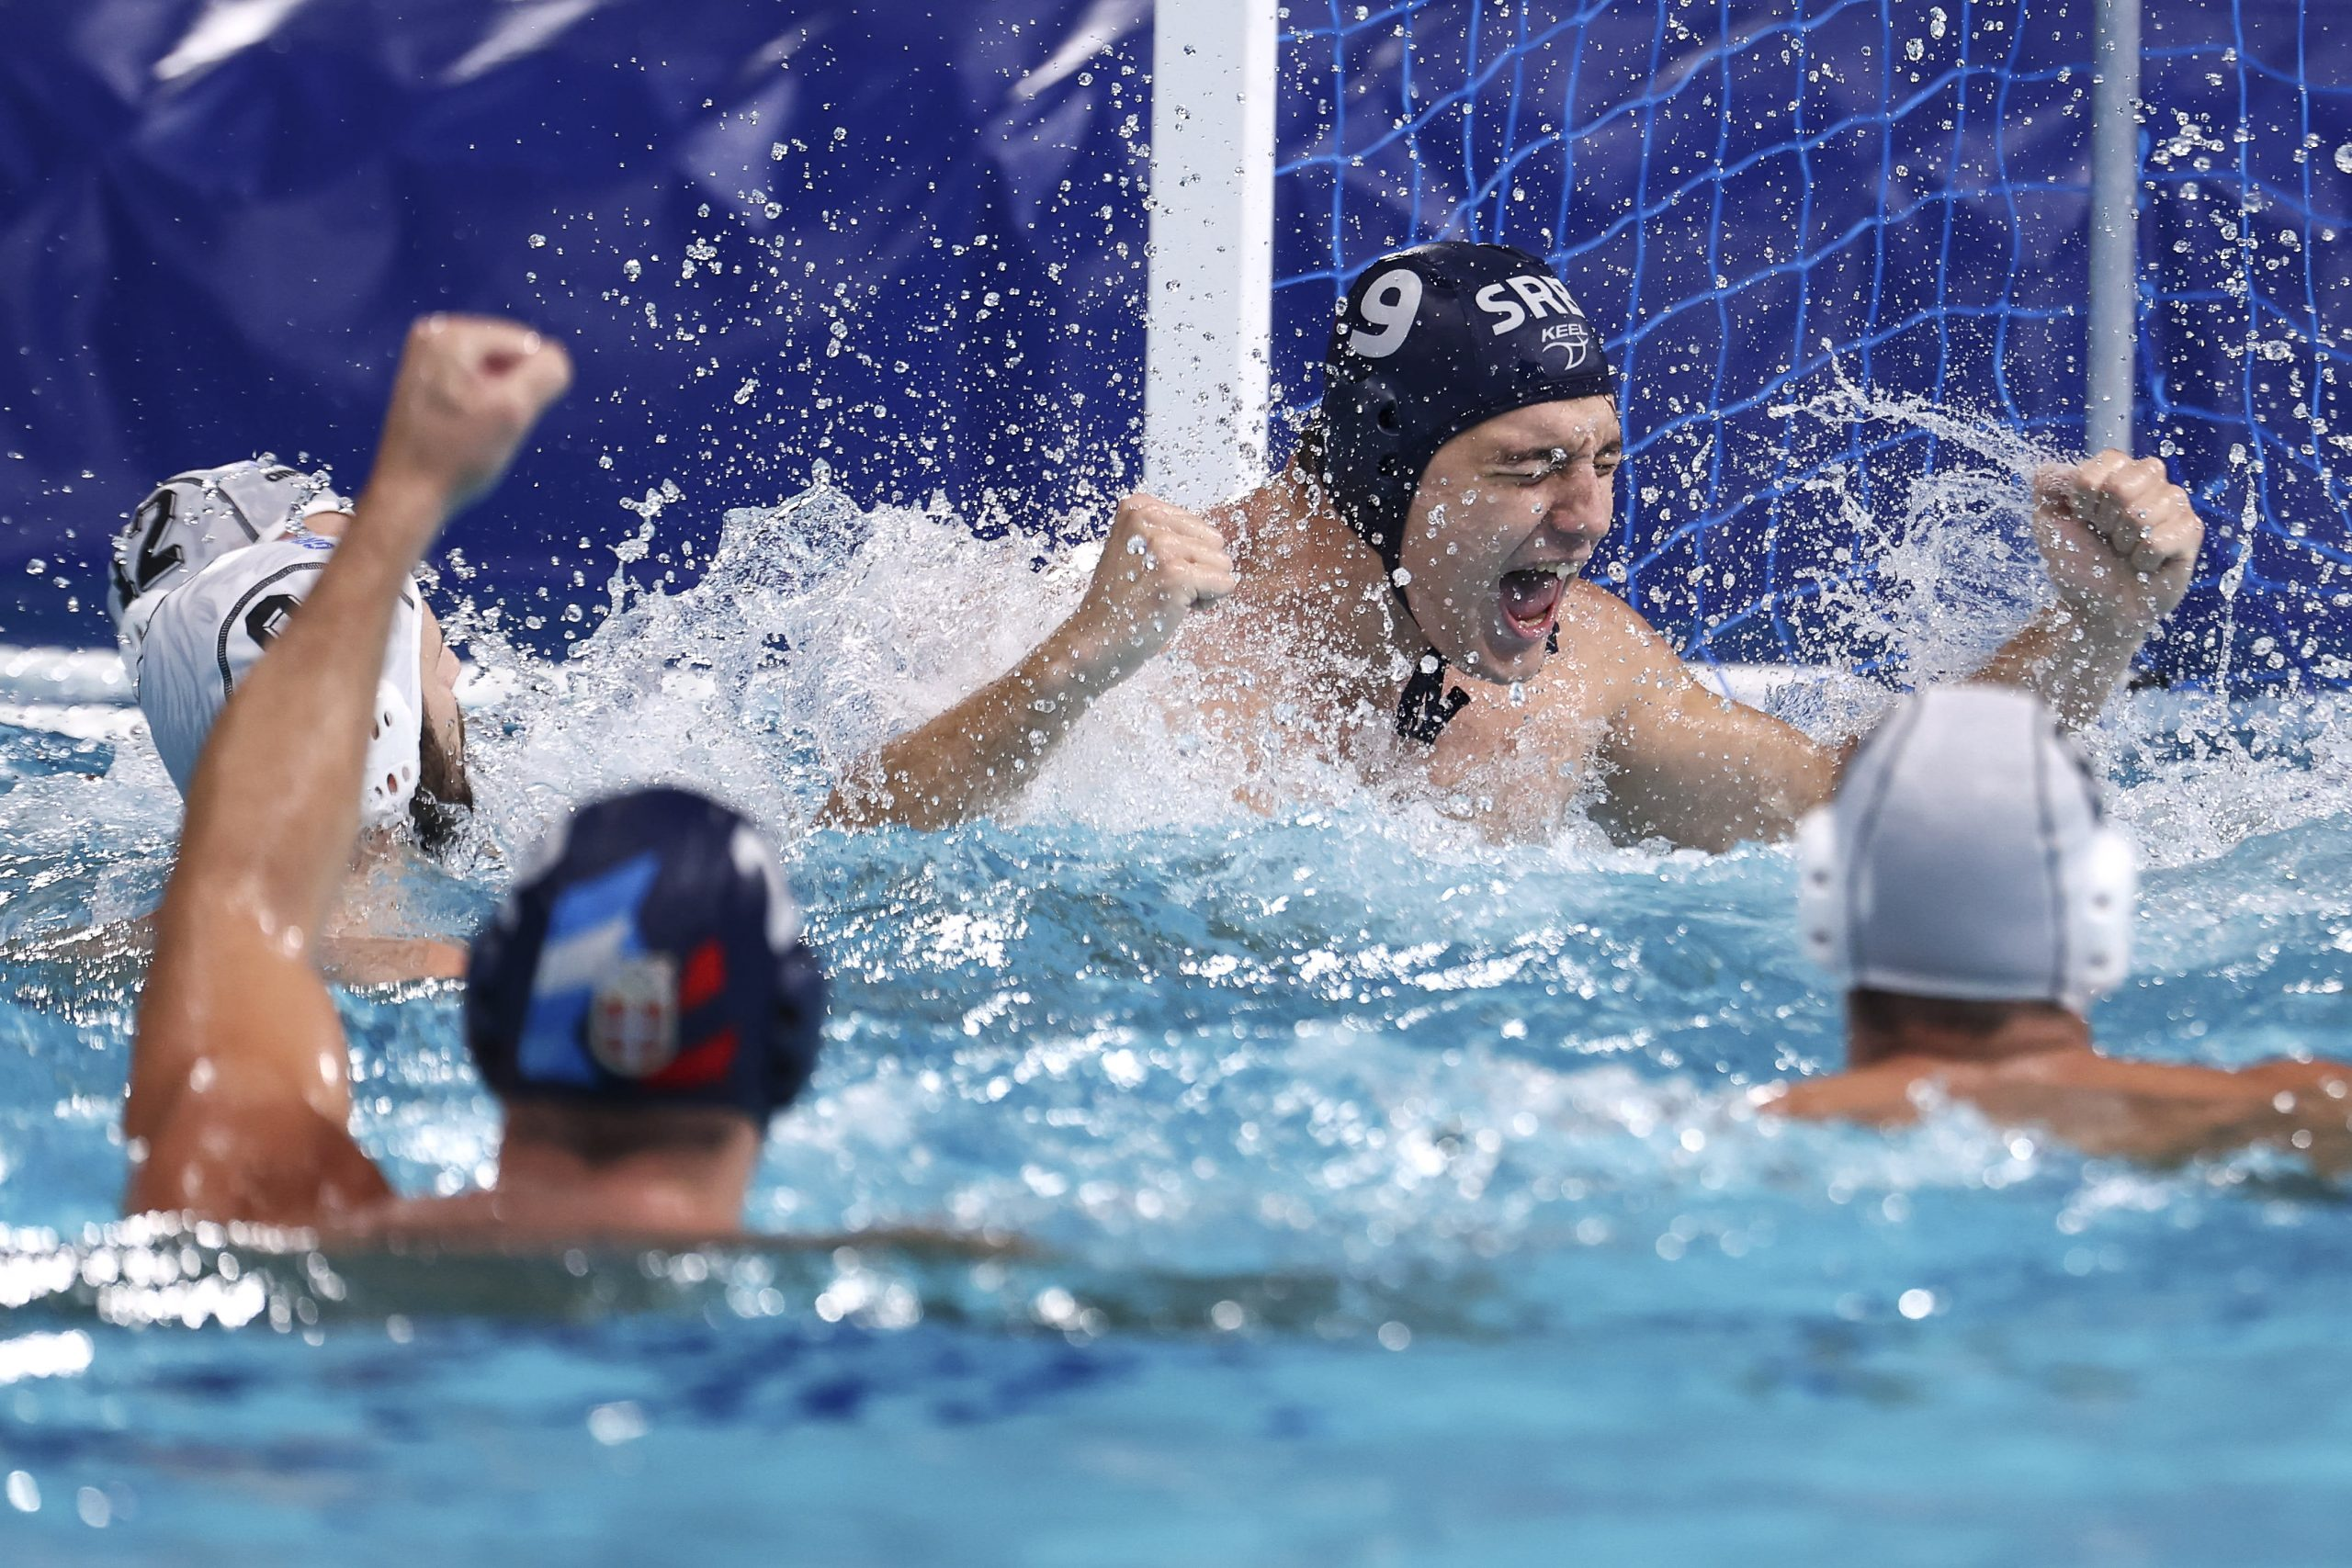 Tokyo 2020: Serbia Wins Men's Gold in Water Polo